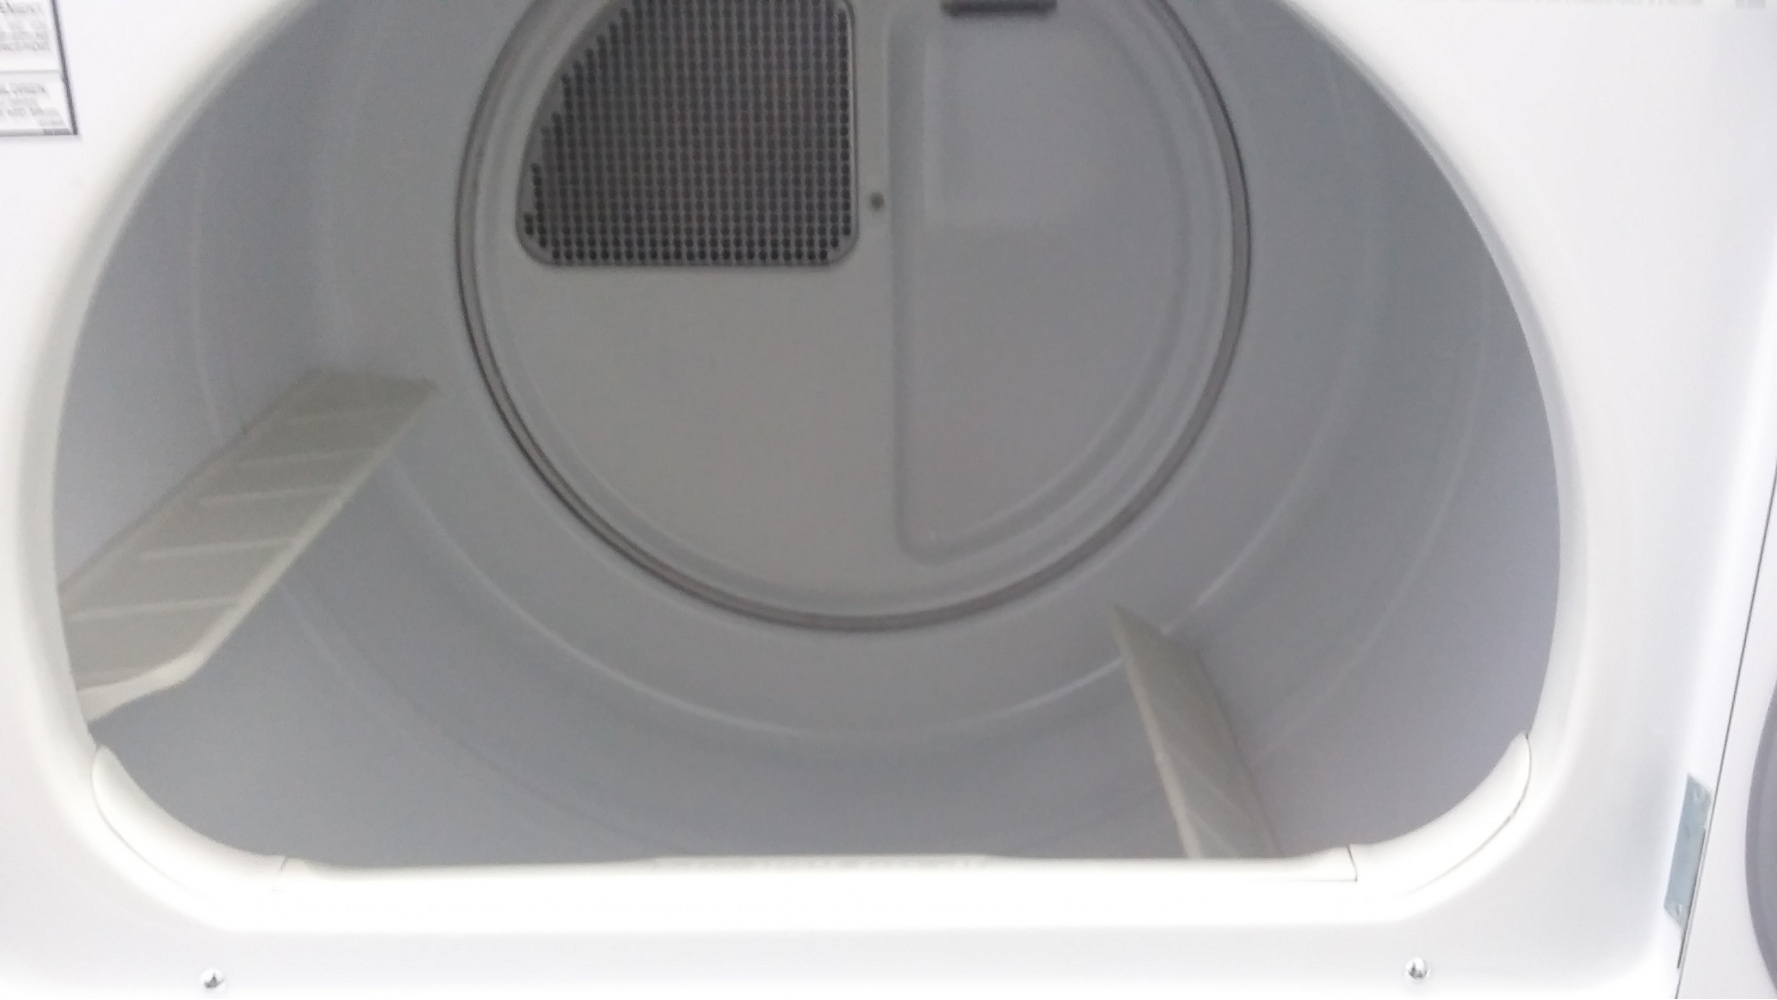 Maytag Performa White Top Load Washer W Gas Dryer Set